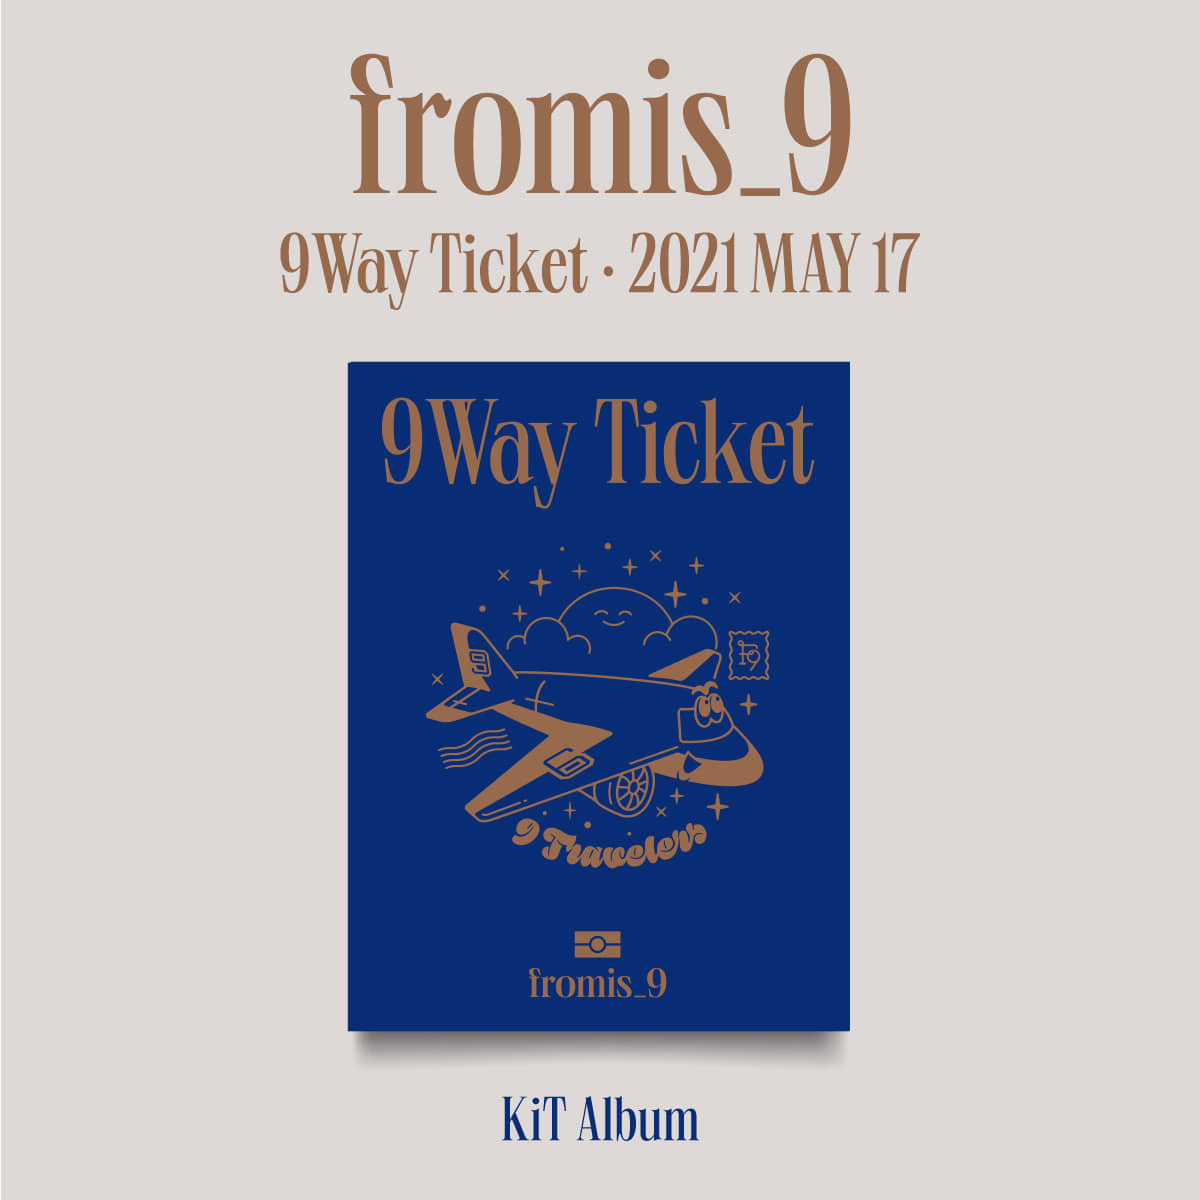 프로미스나인(fromis_9) - 2nd Single Album [9 WAY TICKET] (Kit Album)케이팝스토어(kpop store)